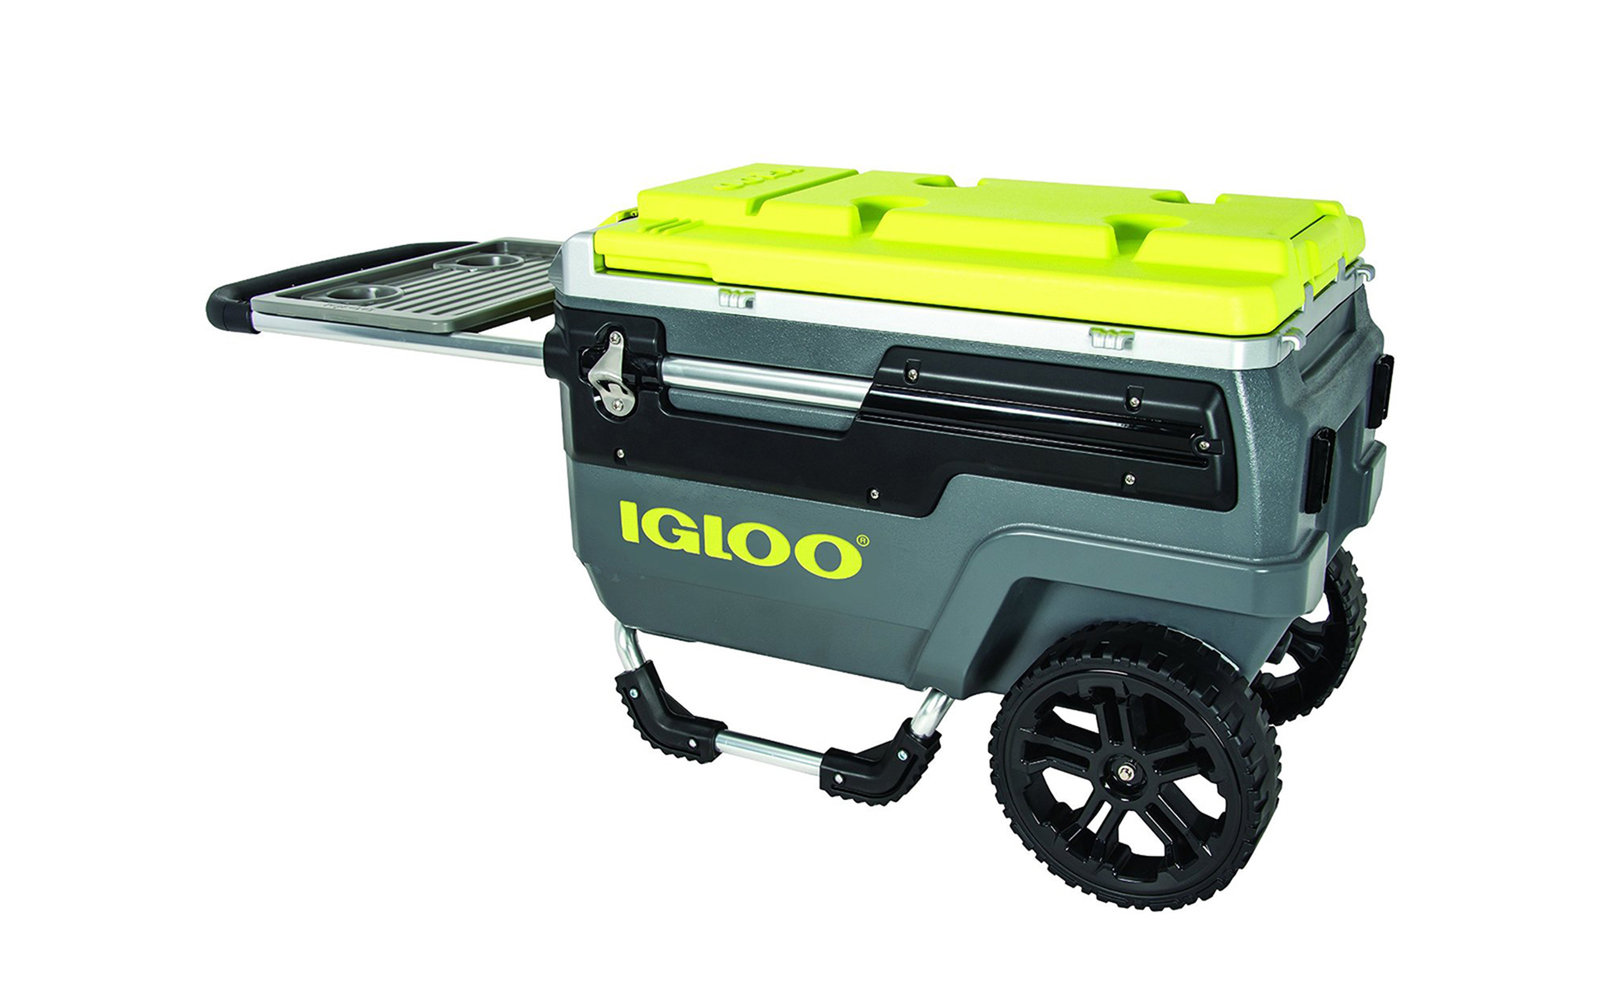 Igloo Trailmate Cooler Camping Gear